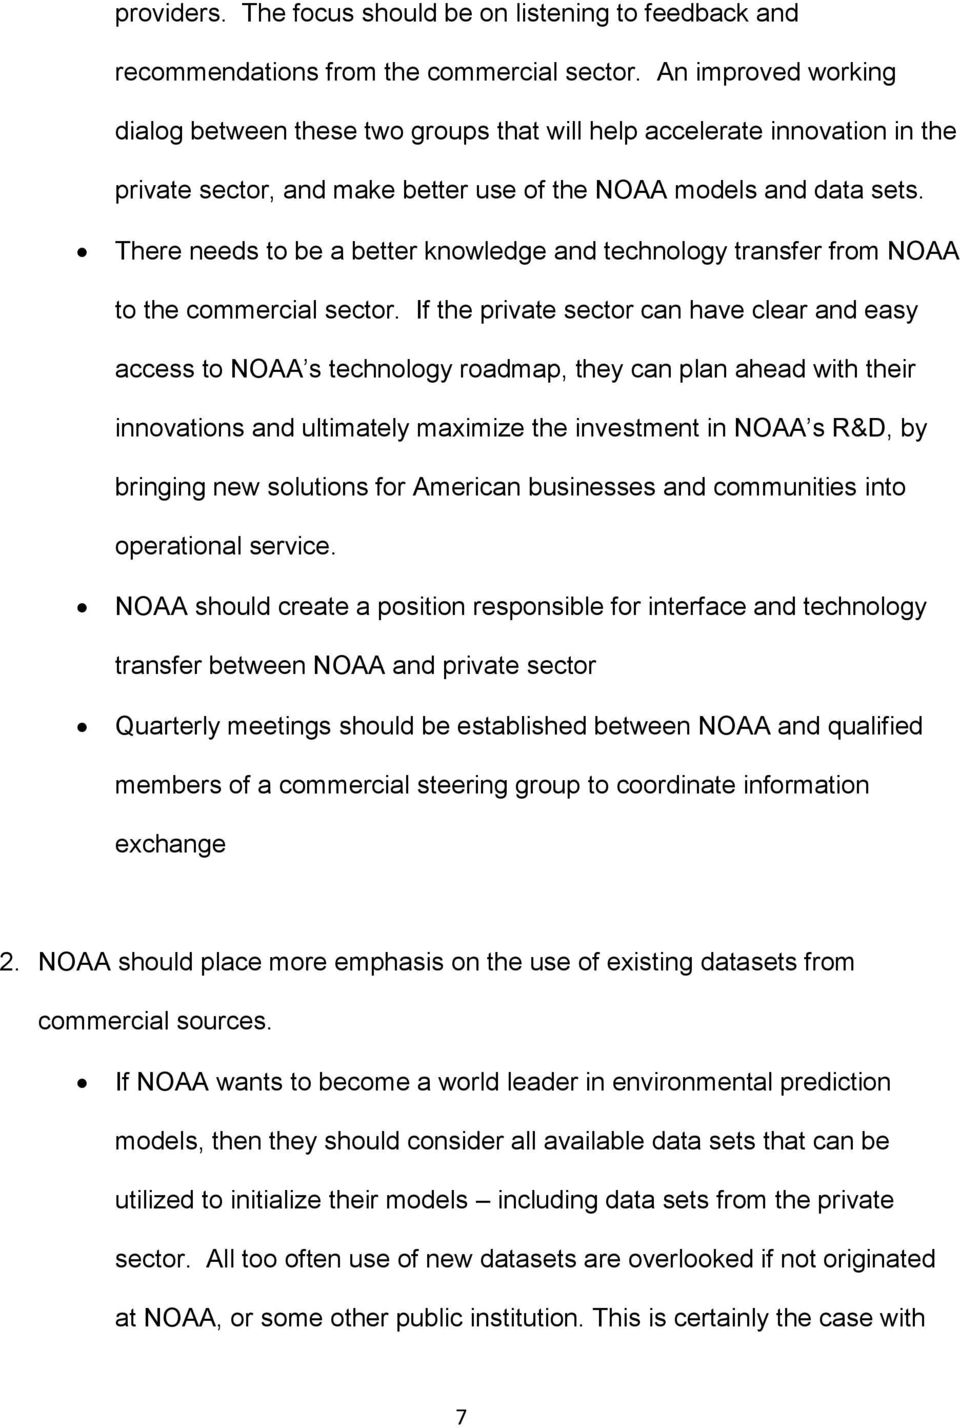 There needs to be a better knowledge and technology transfer from NOAA to the commercial sector.